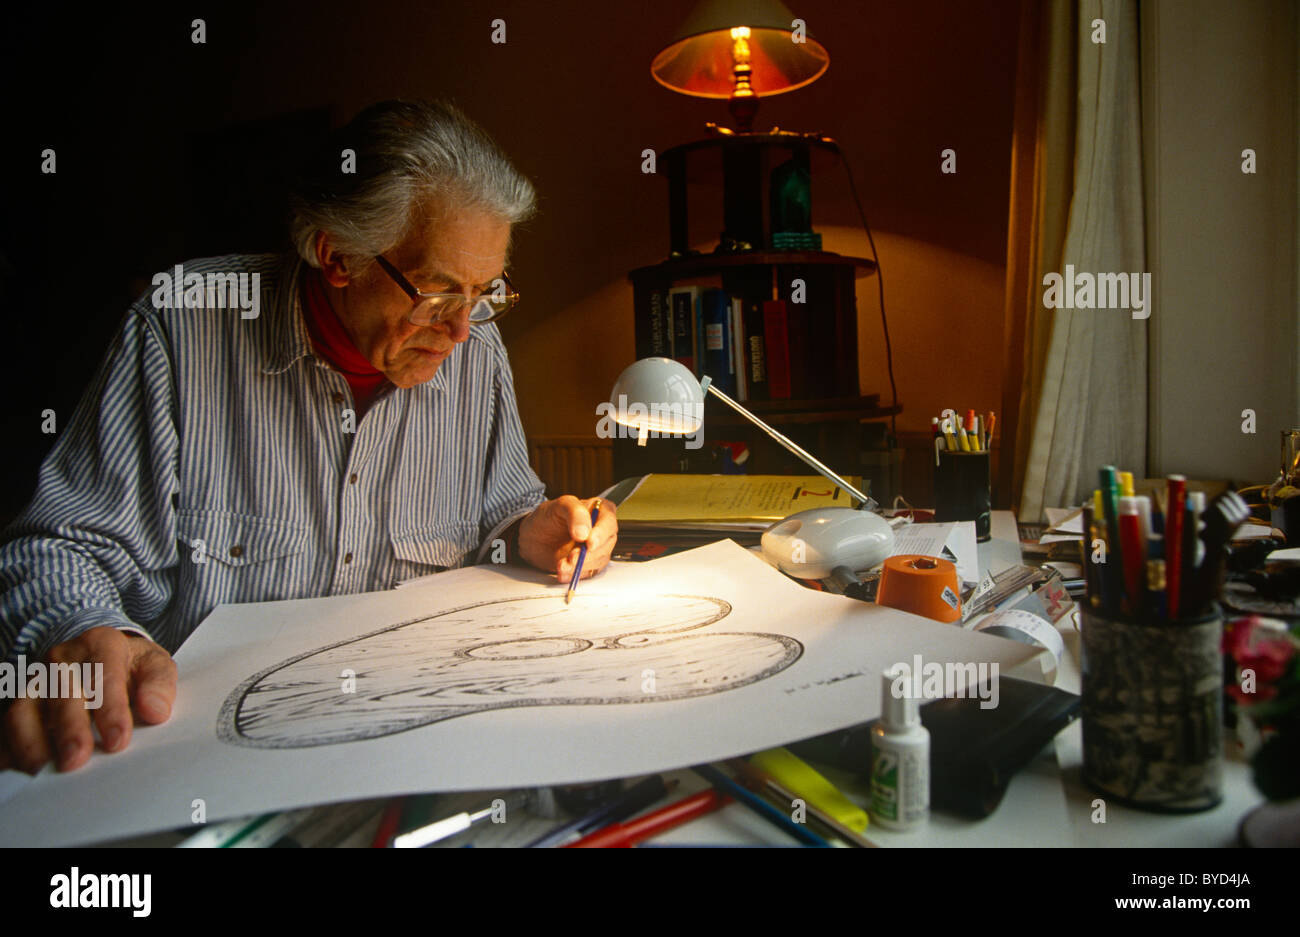 The Renowned Maze Designer Randoll Coate Working In His